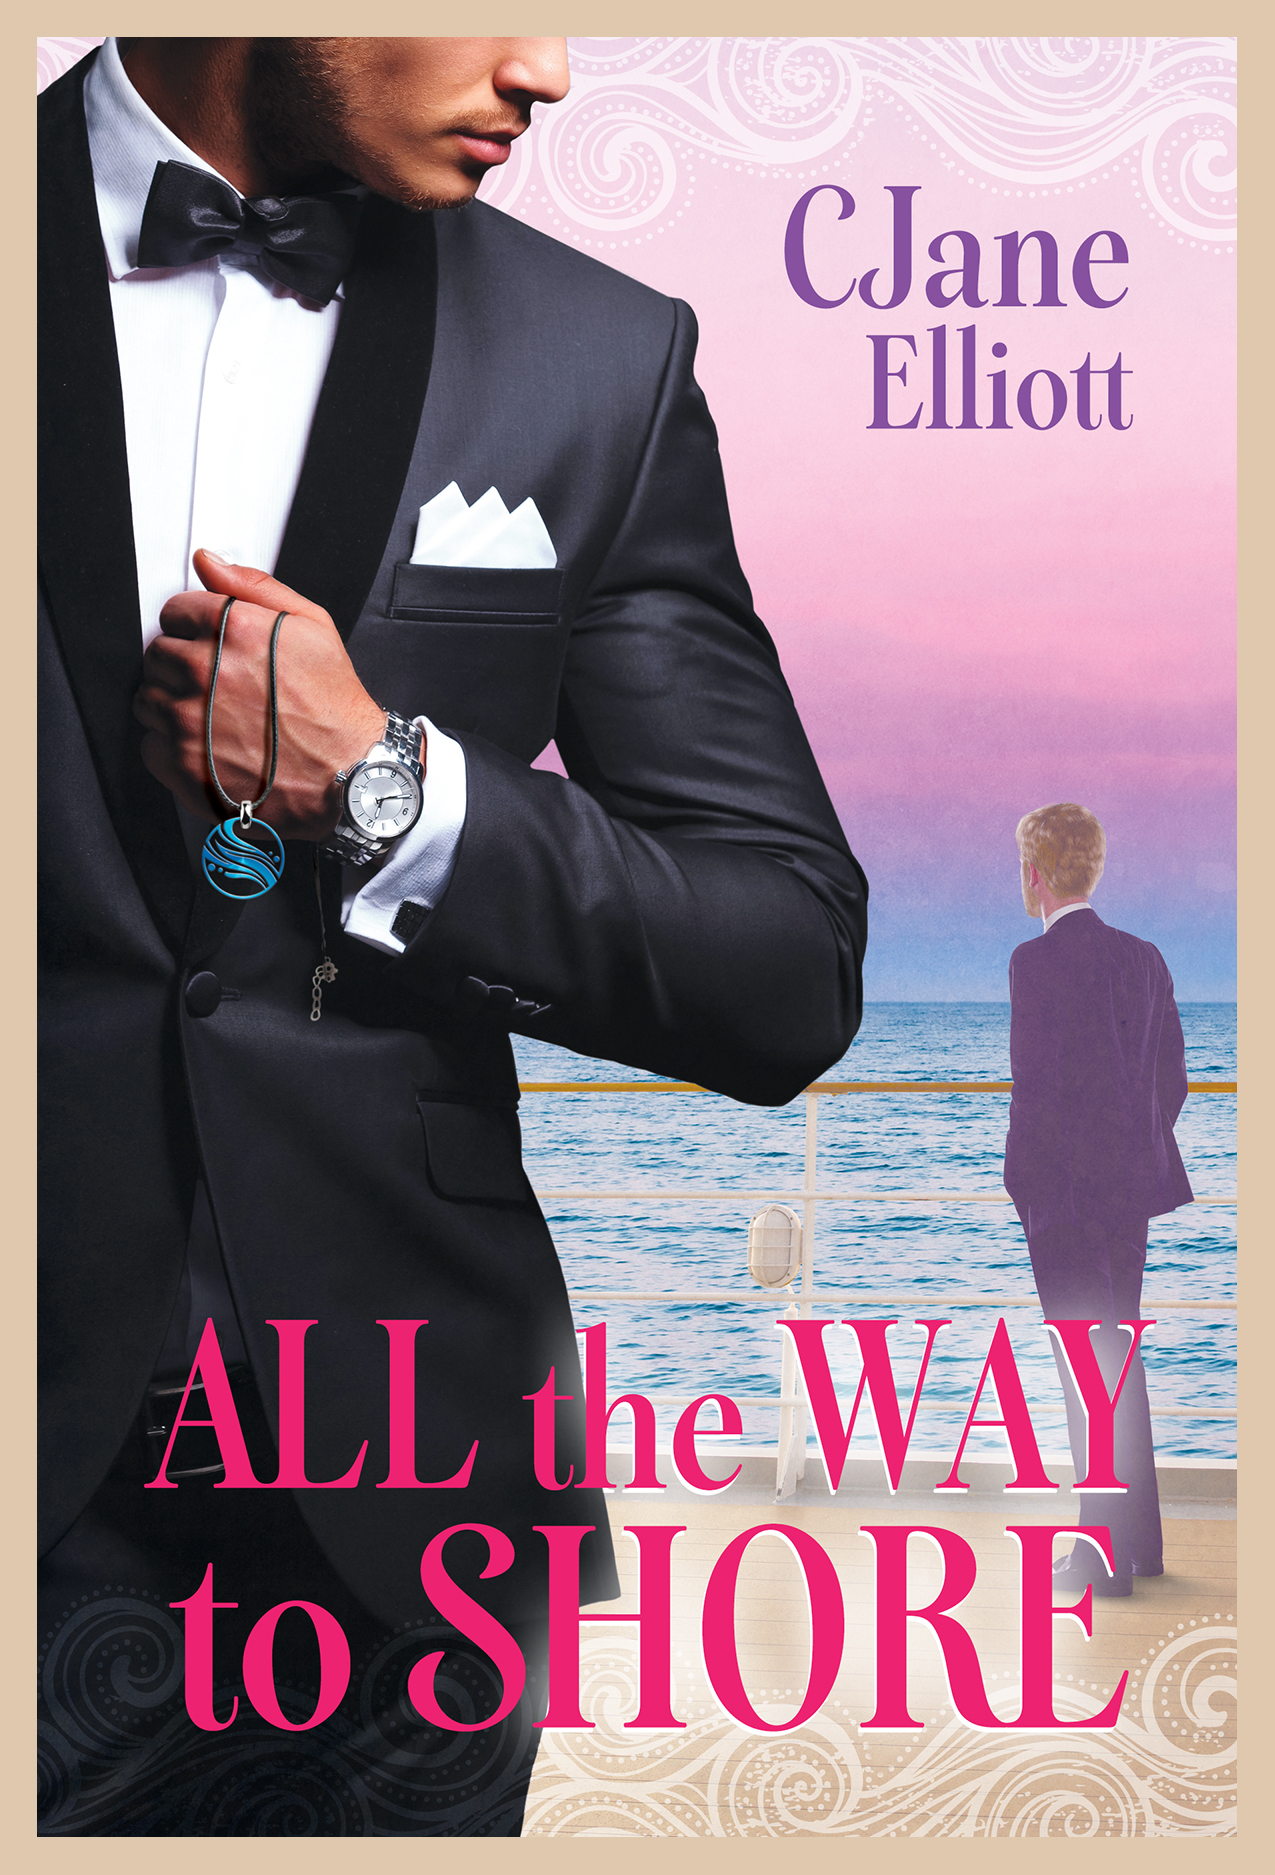 All the Way to Shore by CJane Elliott